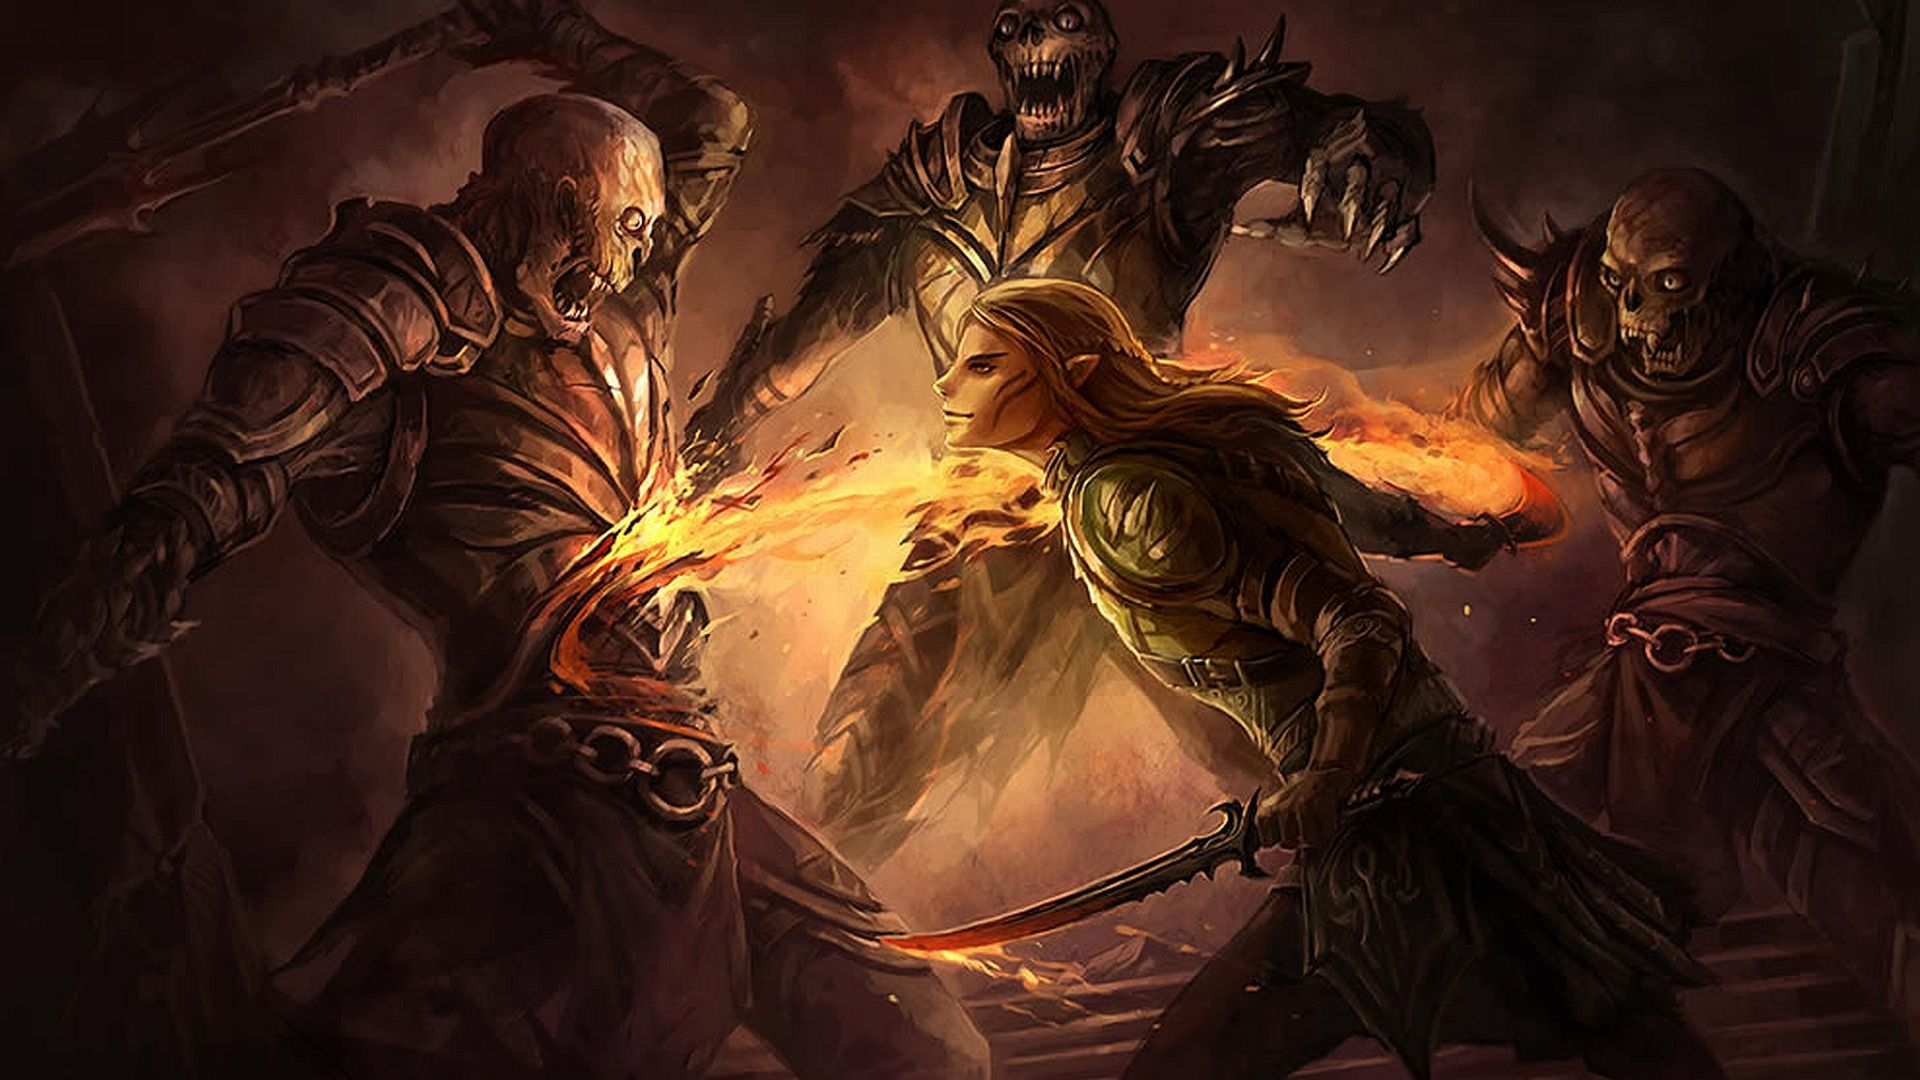 Elemental Warriors Free warrior wallpaper background